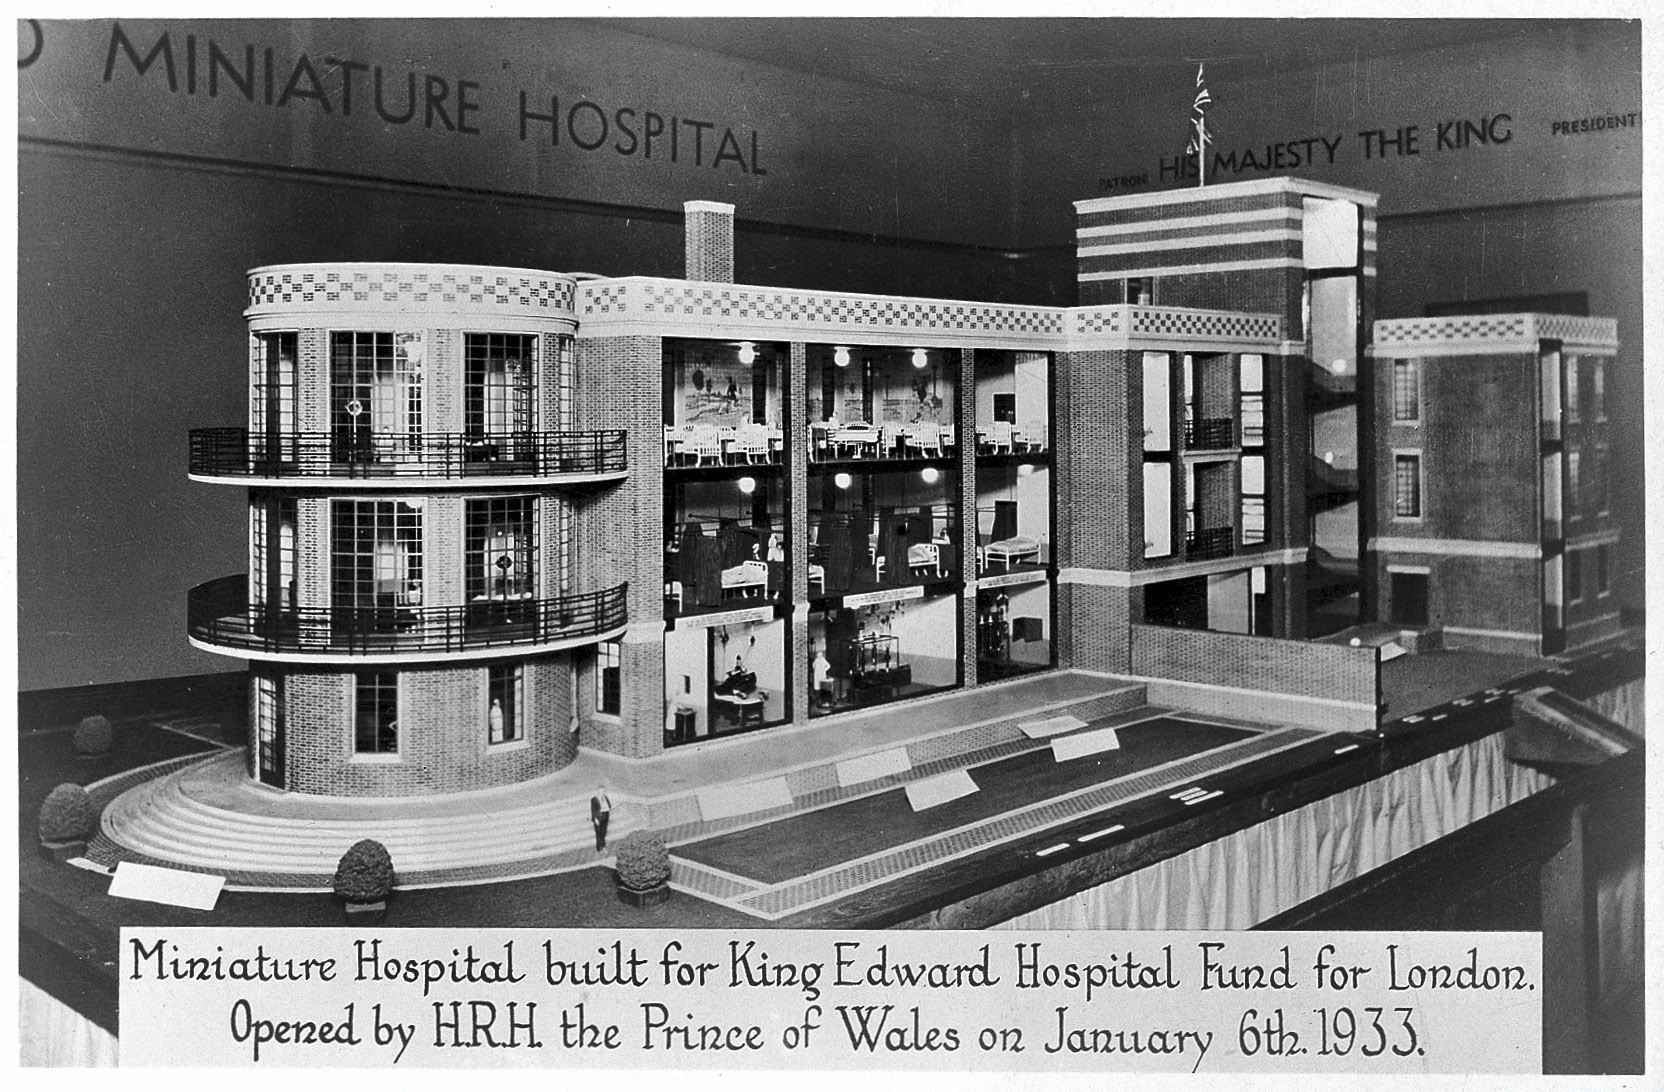 """""""Death in Venice"""" to Showcase Architecture's Relationship with Mortality, Death in Venice will focus partially on the changing design of hospitals, places that many people die in every year. Image Courtesy of The Wellcome Library"""